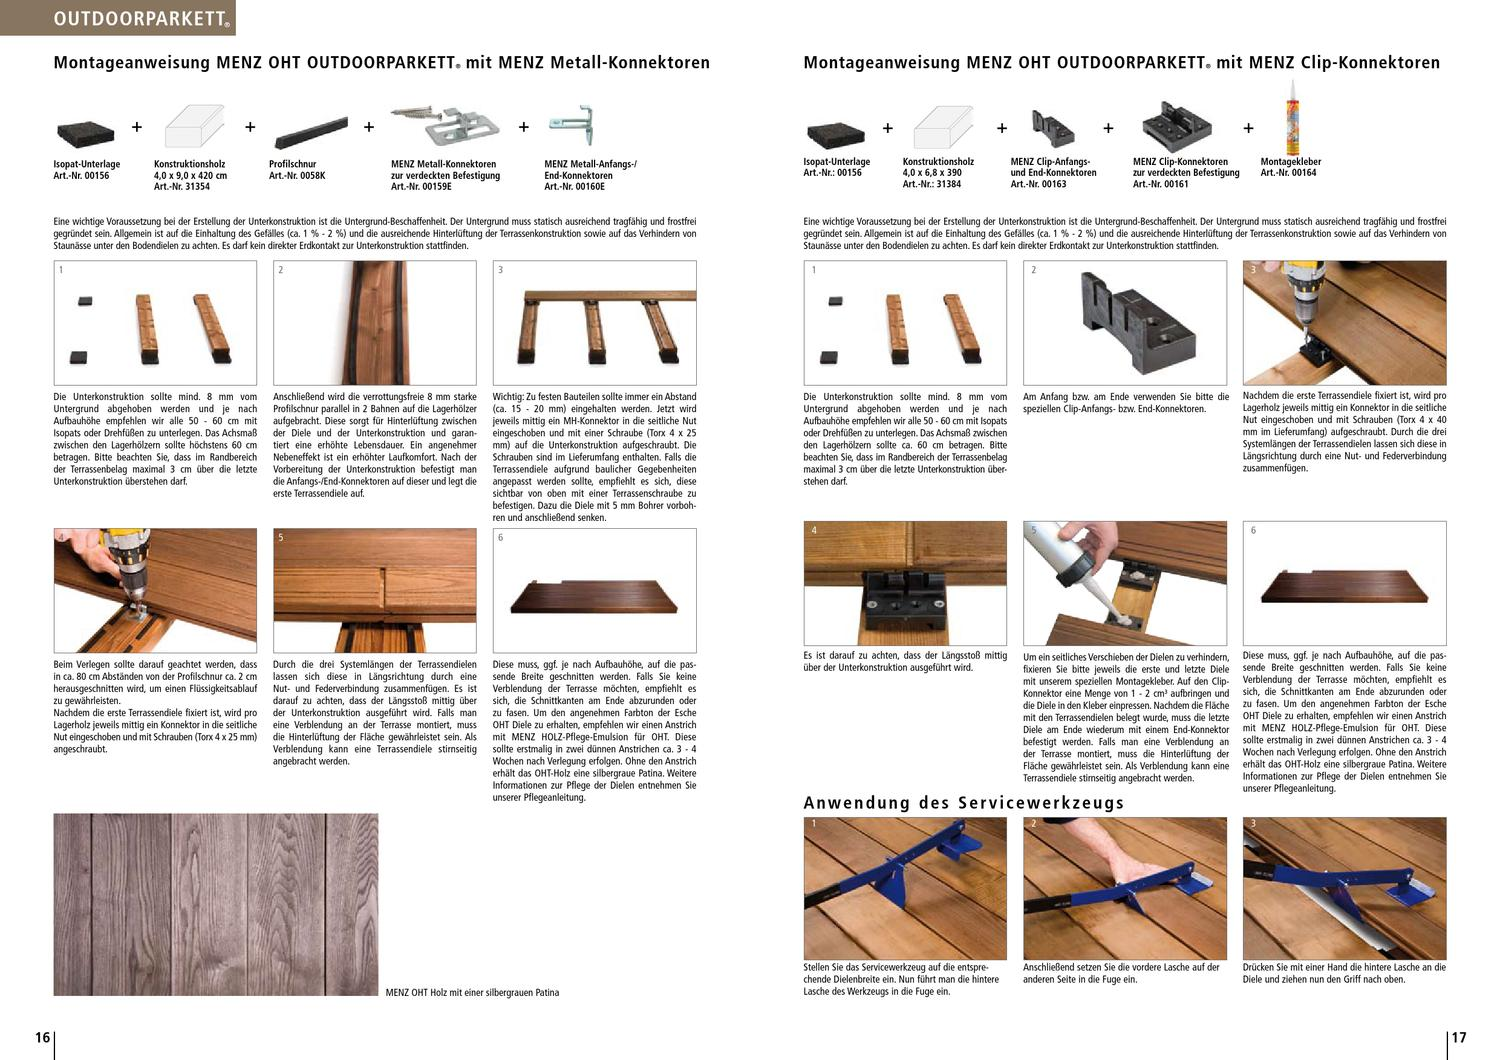 Menz Holz Katalog Premium 2013 by ZT Medien AG - issuu